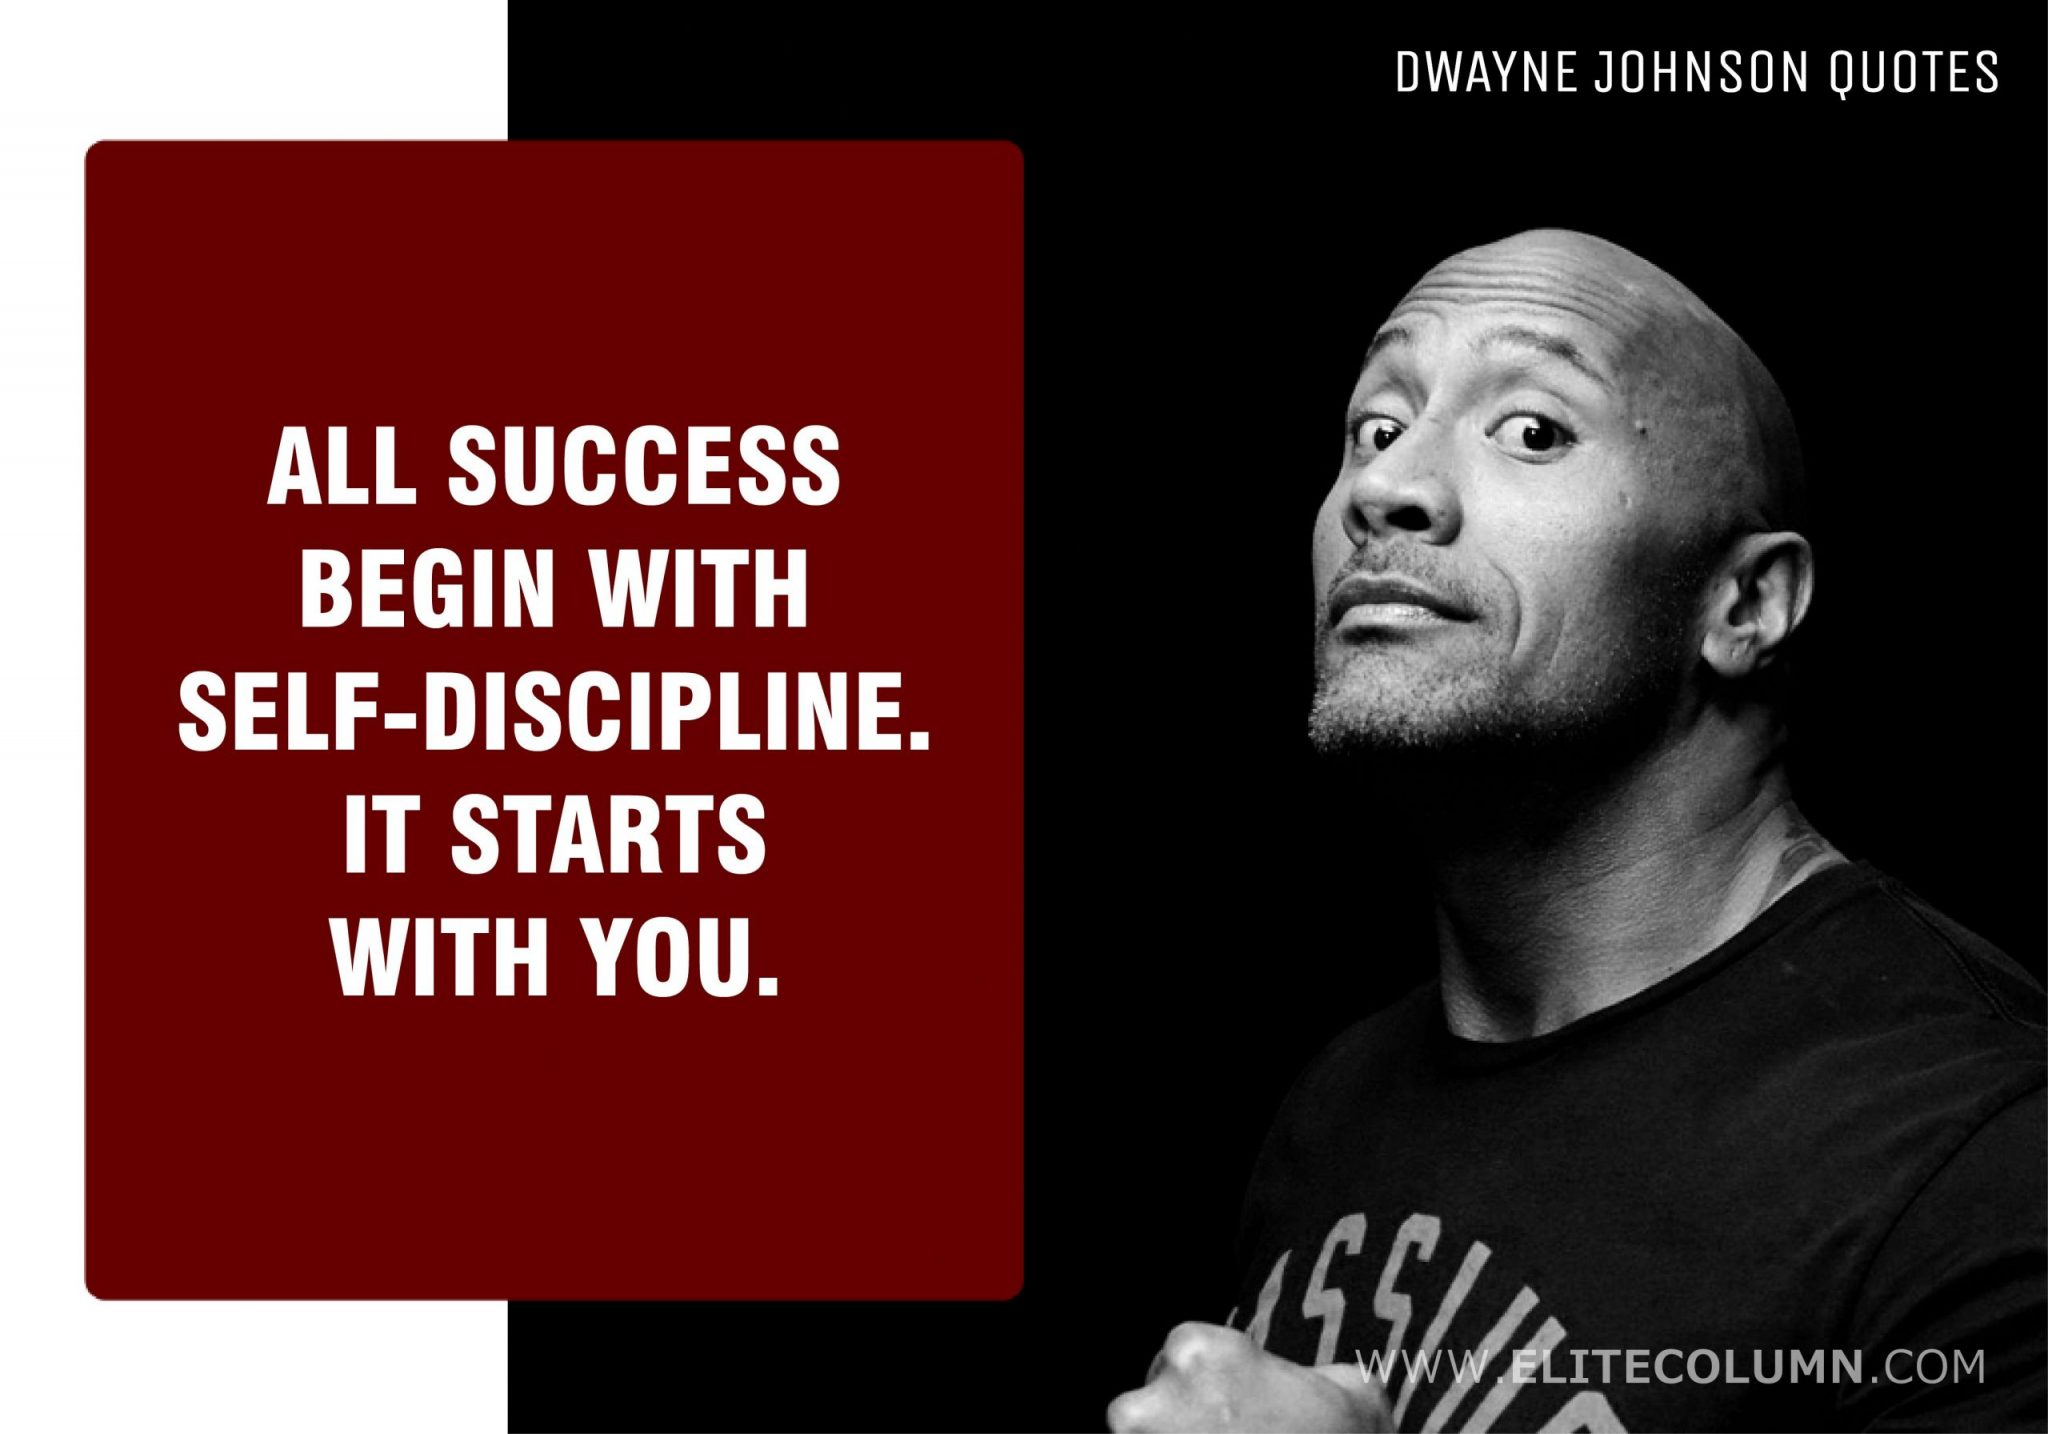 Dwayne Johnson Quotes (1)